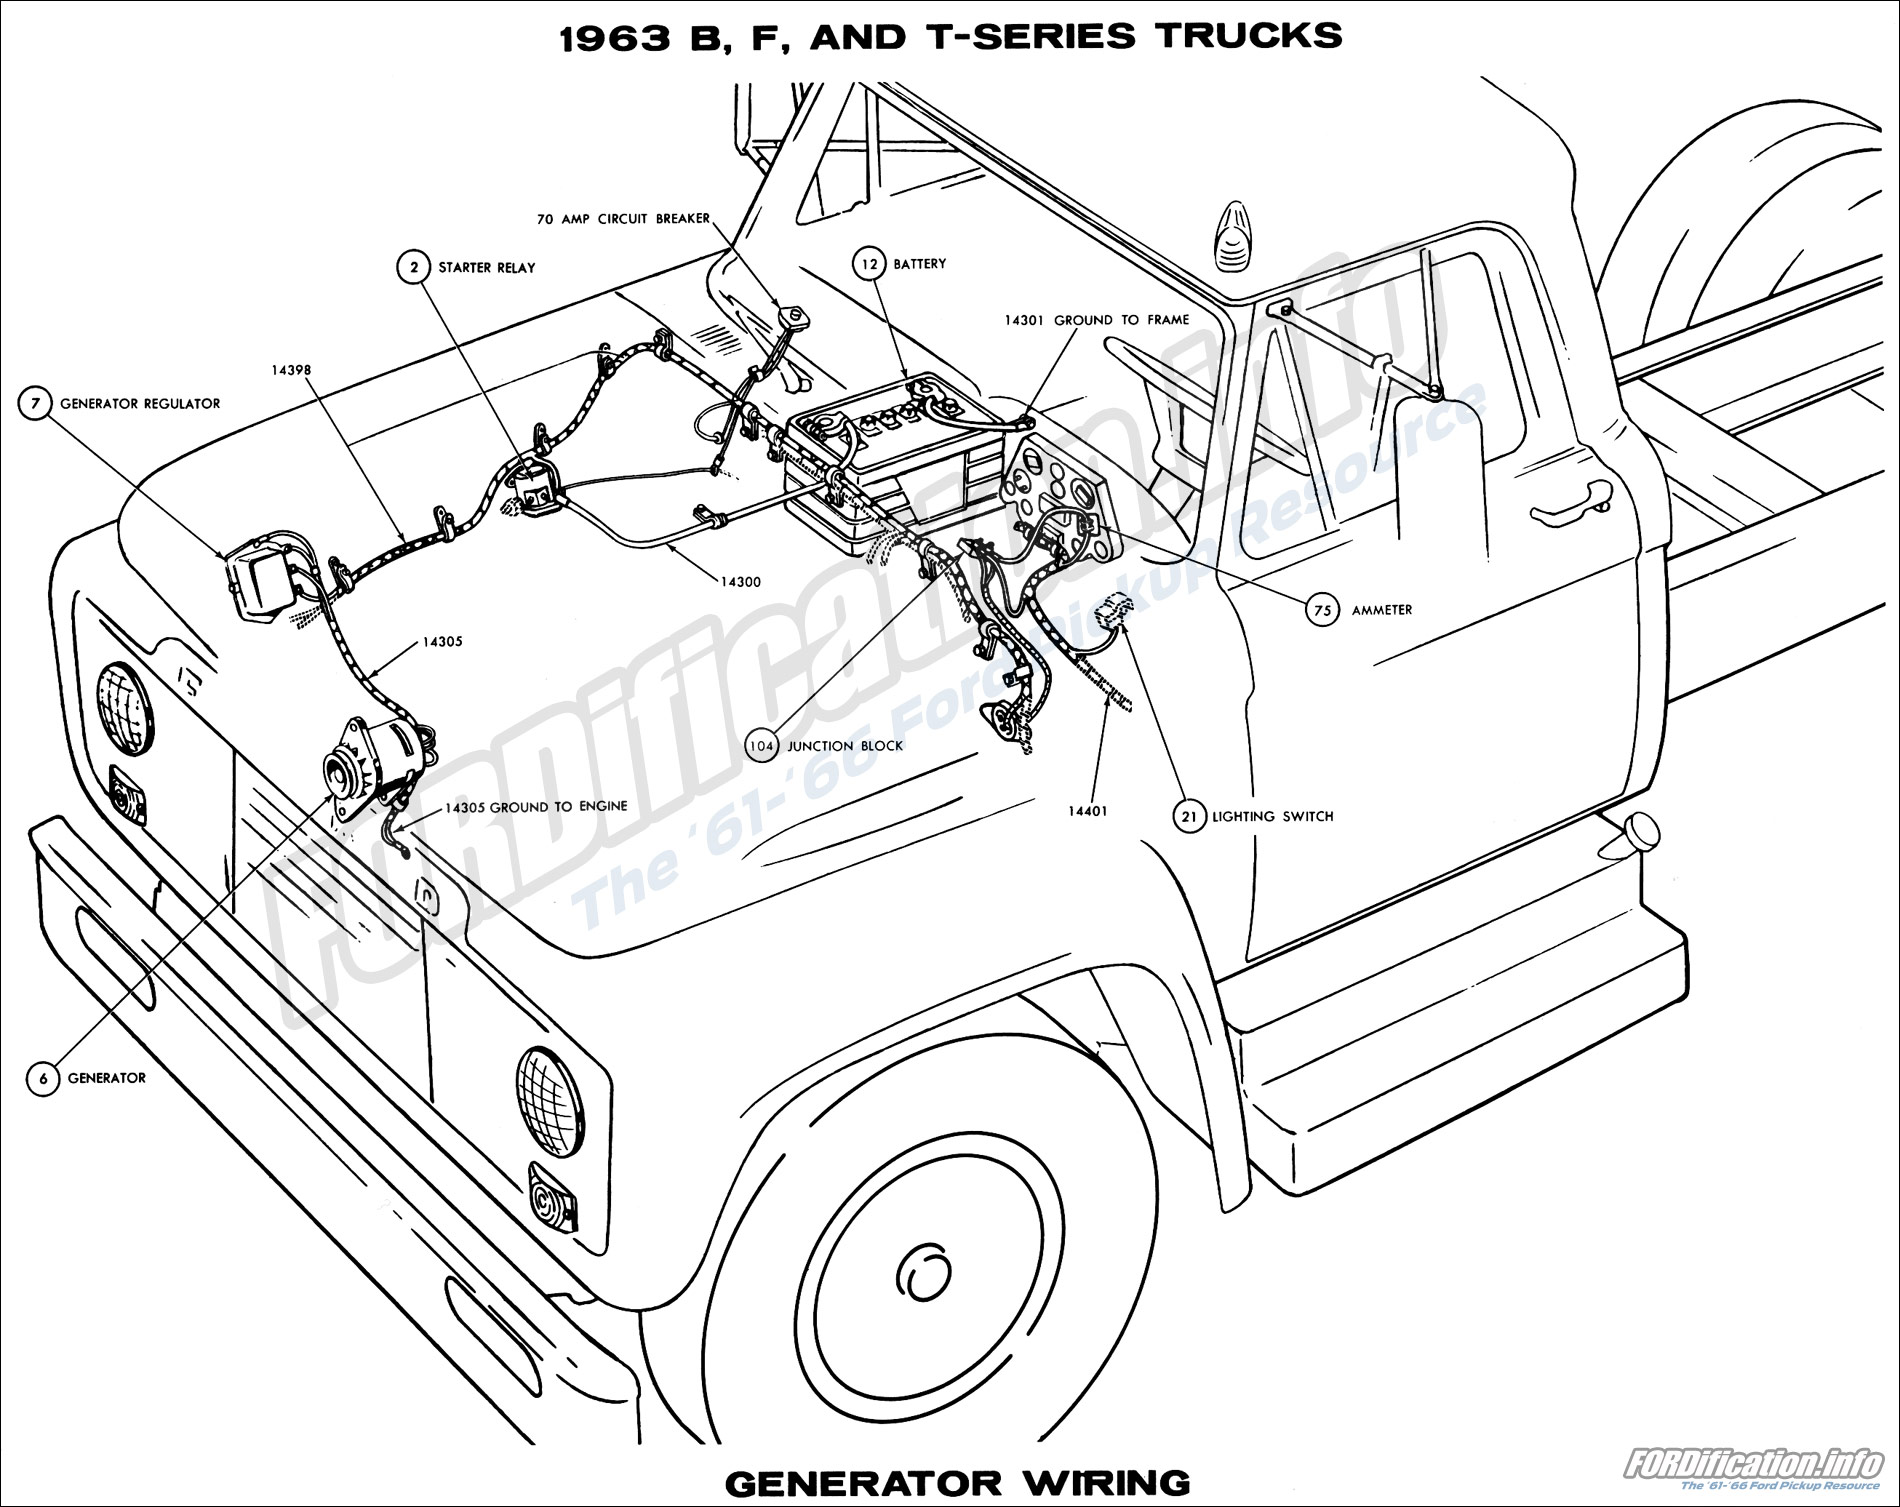 1963 ford truck wiring diagrams - fordification.info - the ... 1963 ford f350 wiring diagram 1963 ford generator wiring diagram